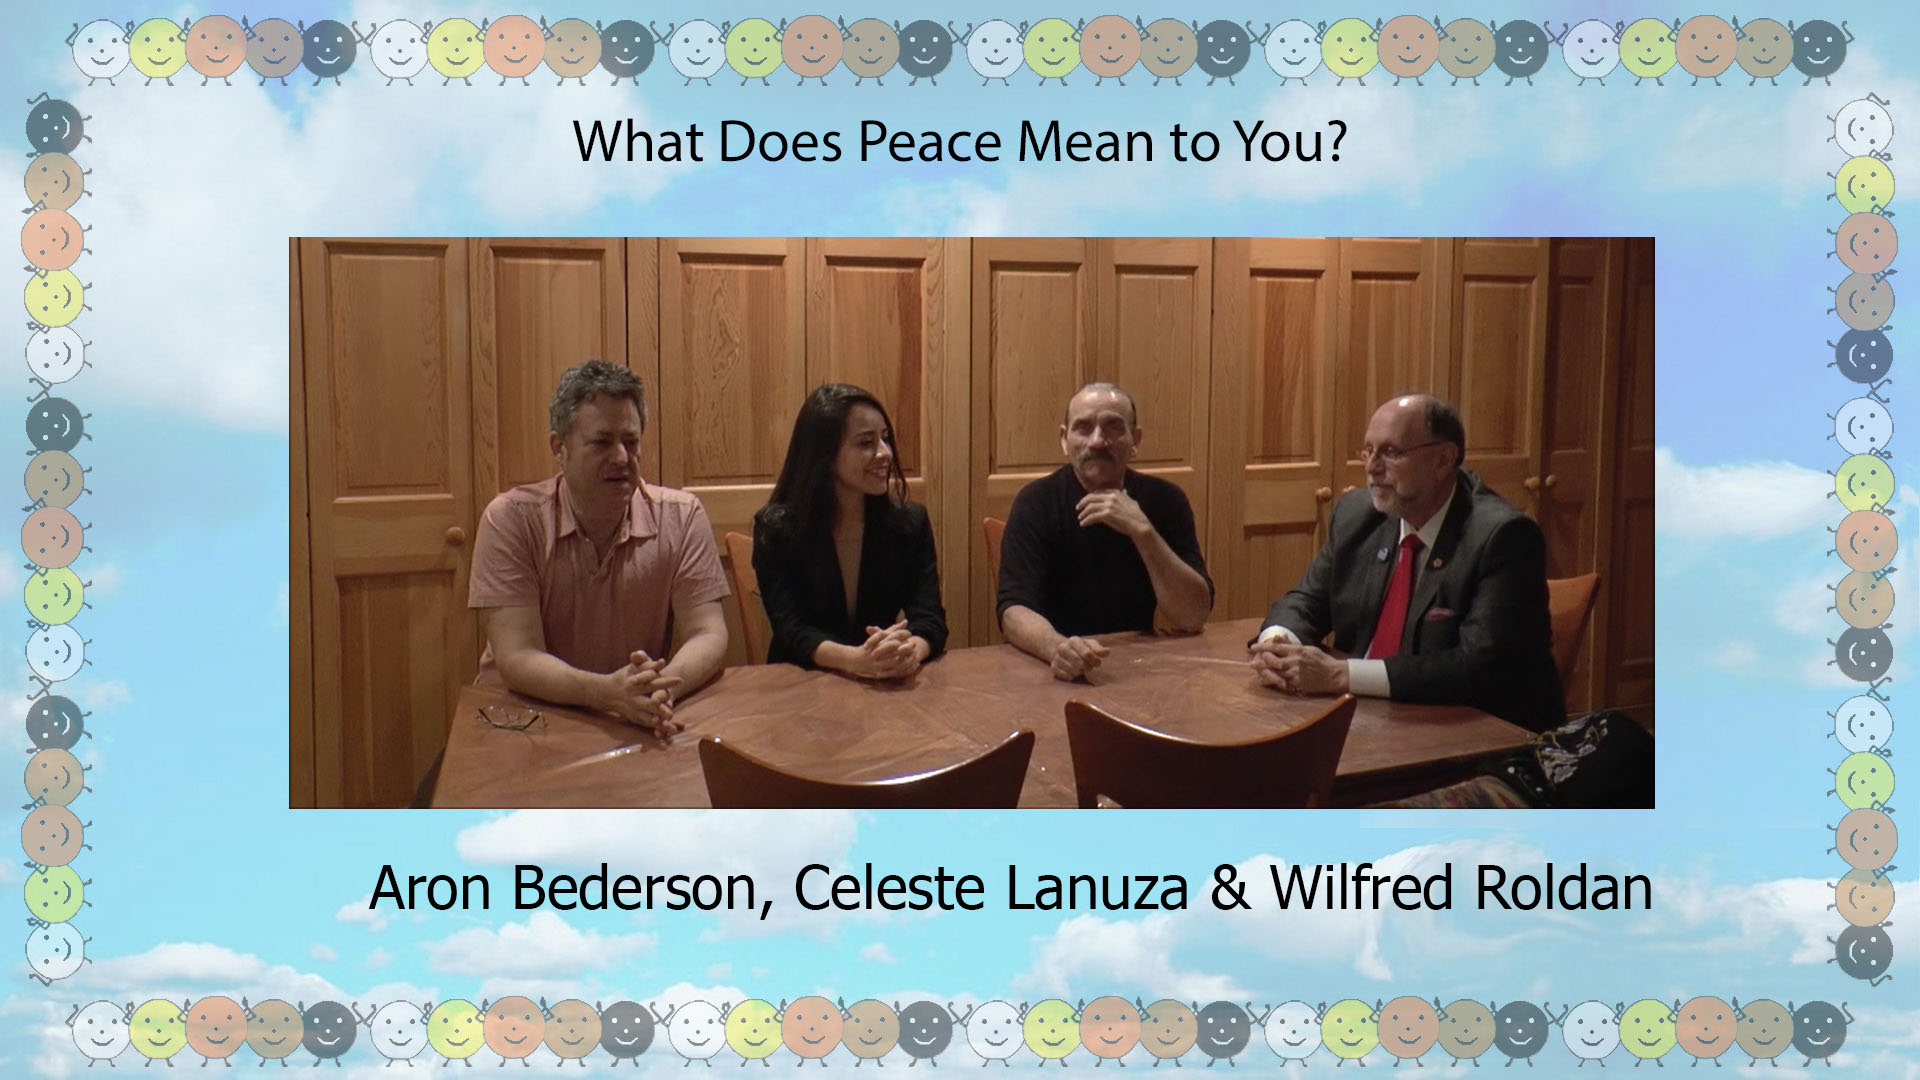 What Peace Means to Aron Bederson, Celeste Lanuza and Wilfred Roldan.